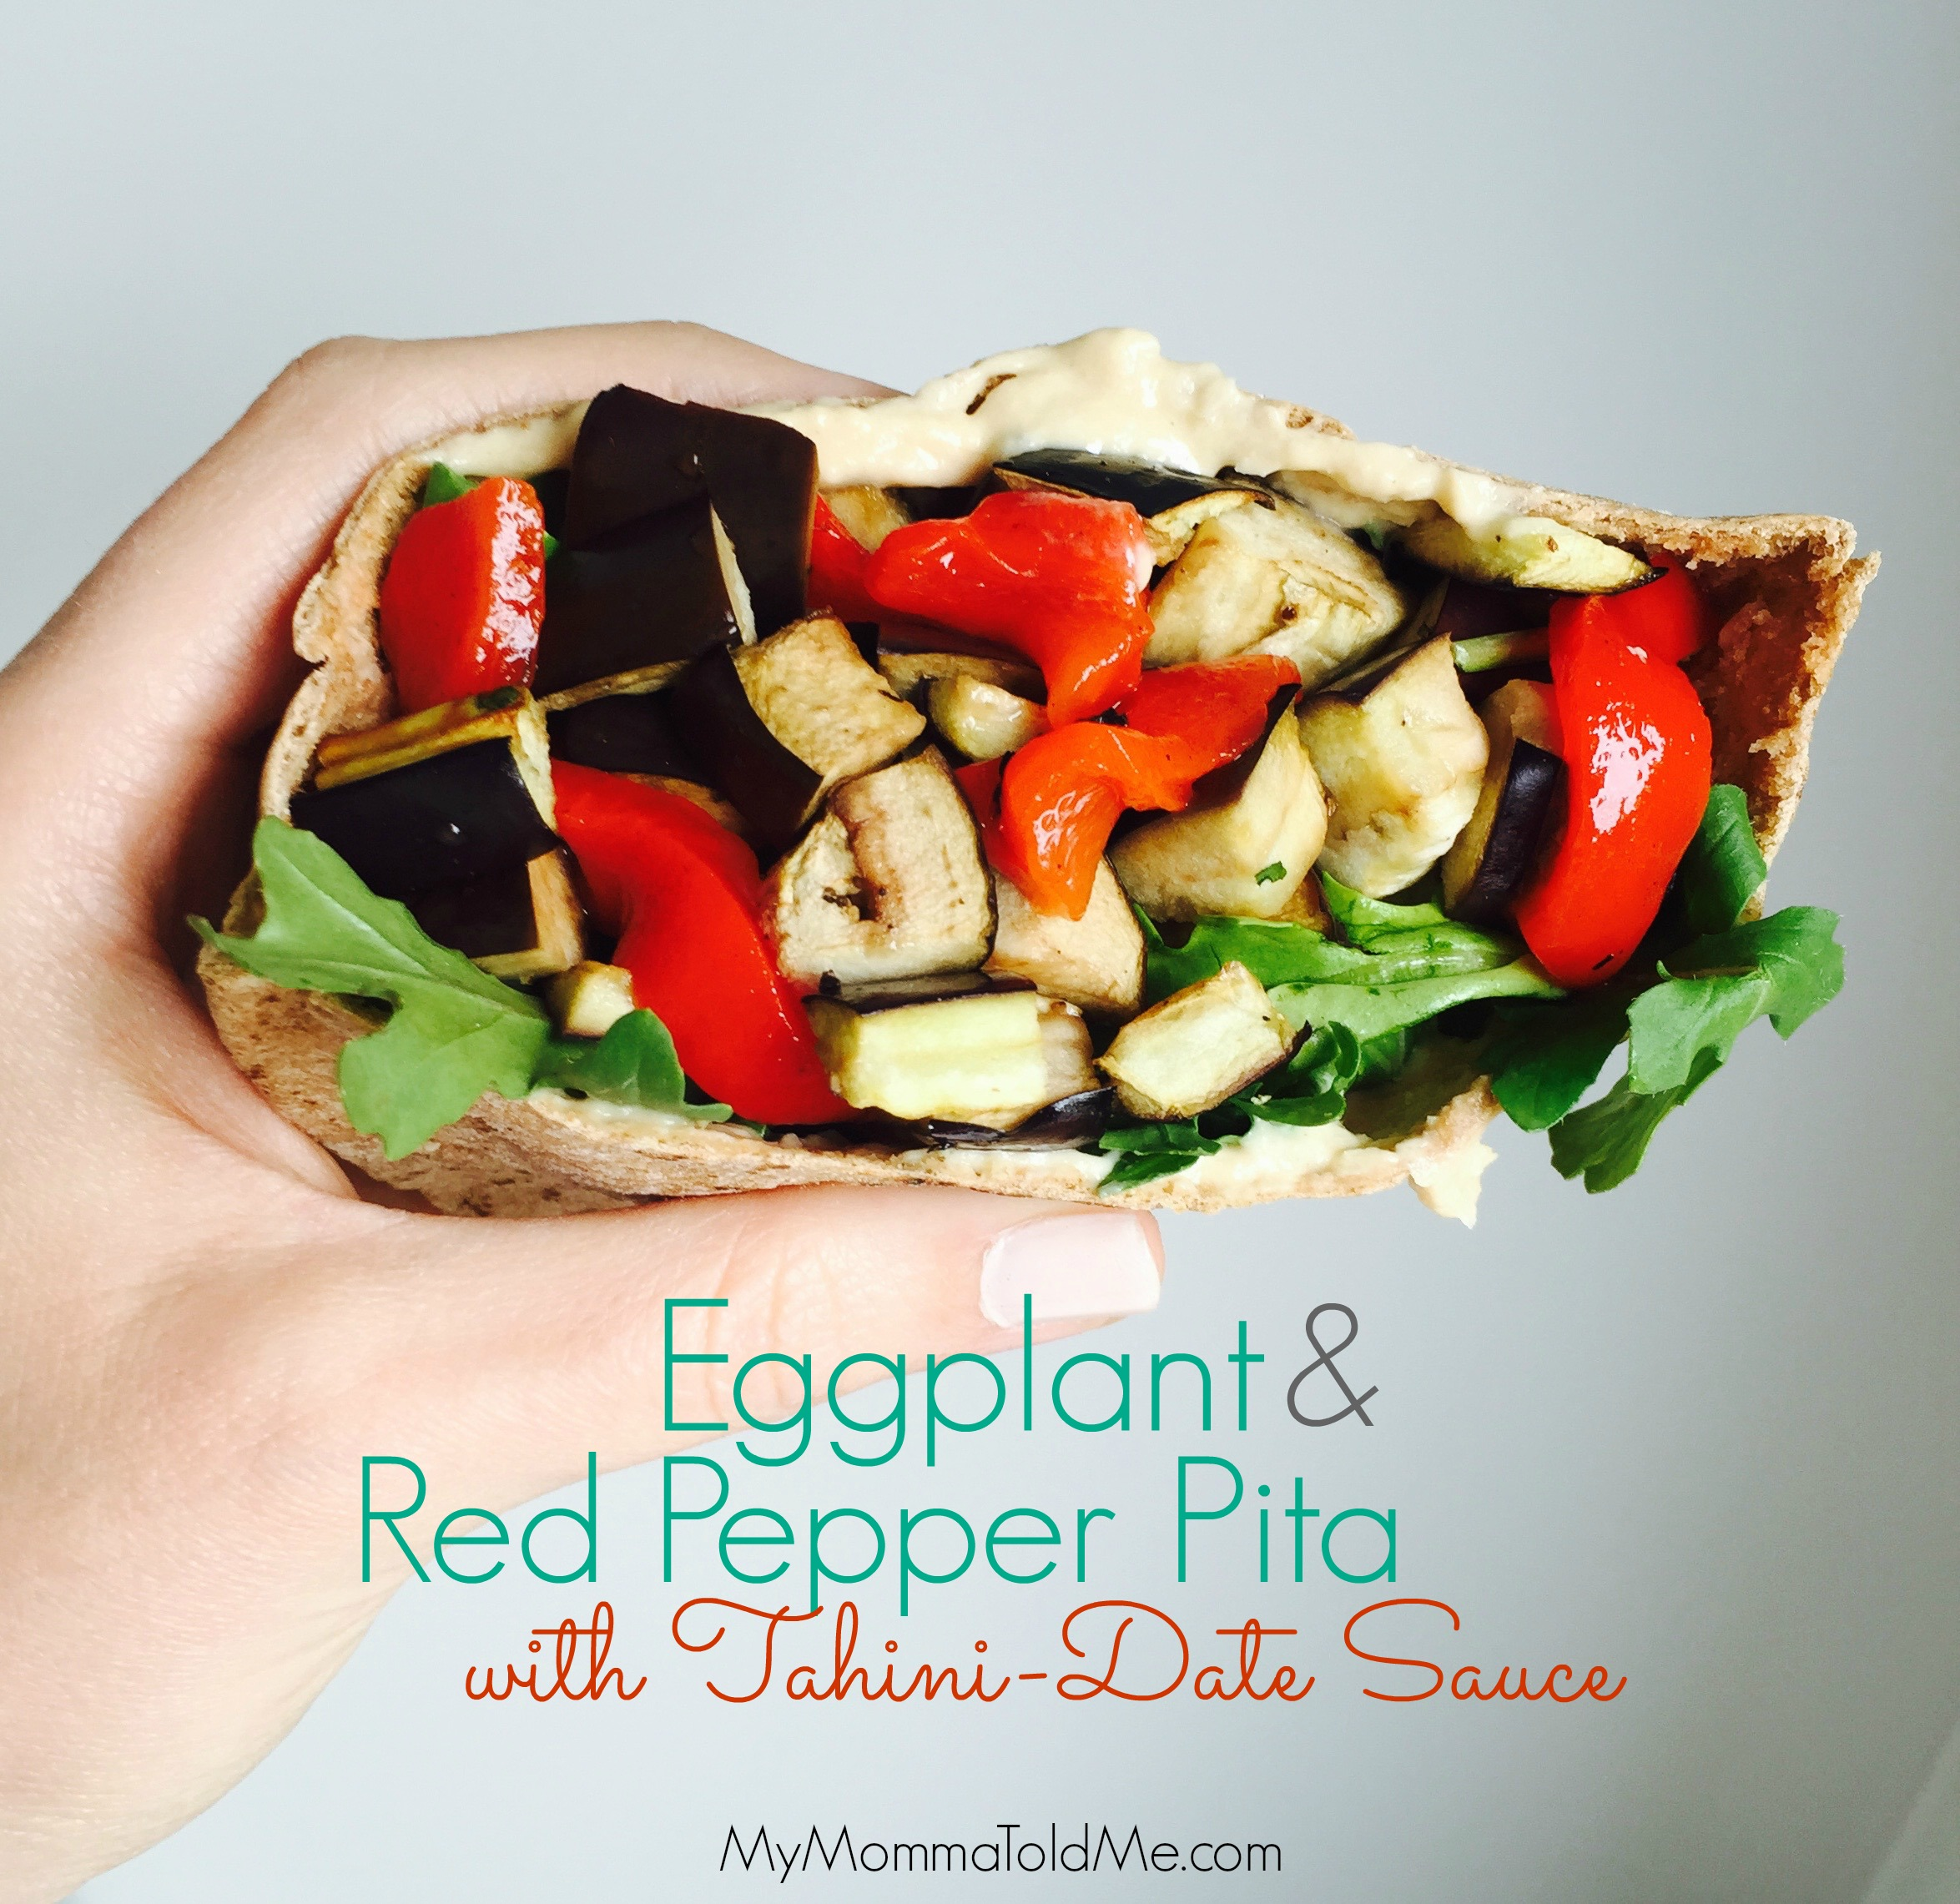 Eat to Live Program Dr Fuhrman Nutritarian Recipe Eggplant and Red Pepper pita sandwich